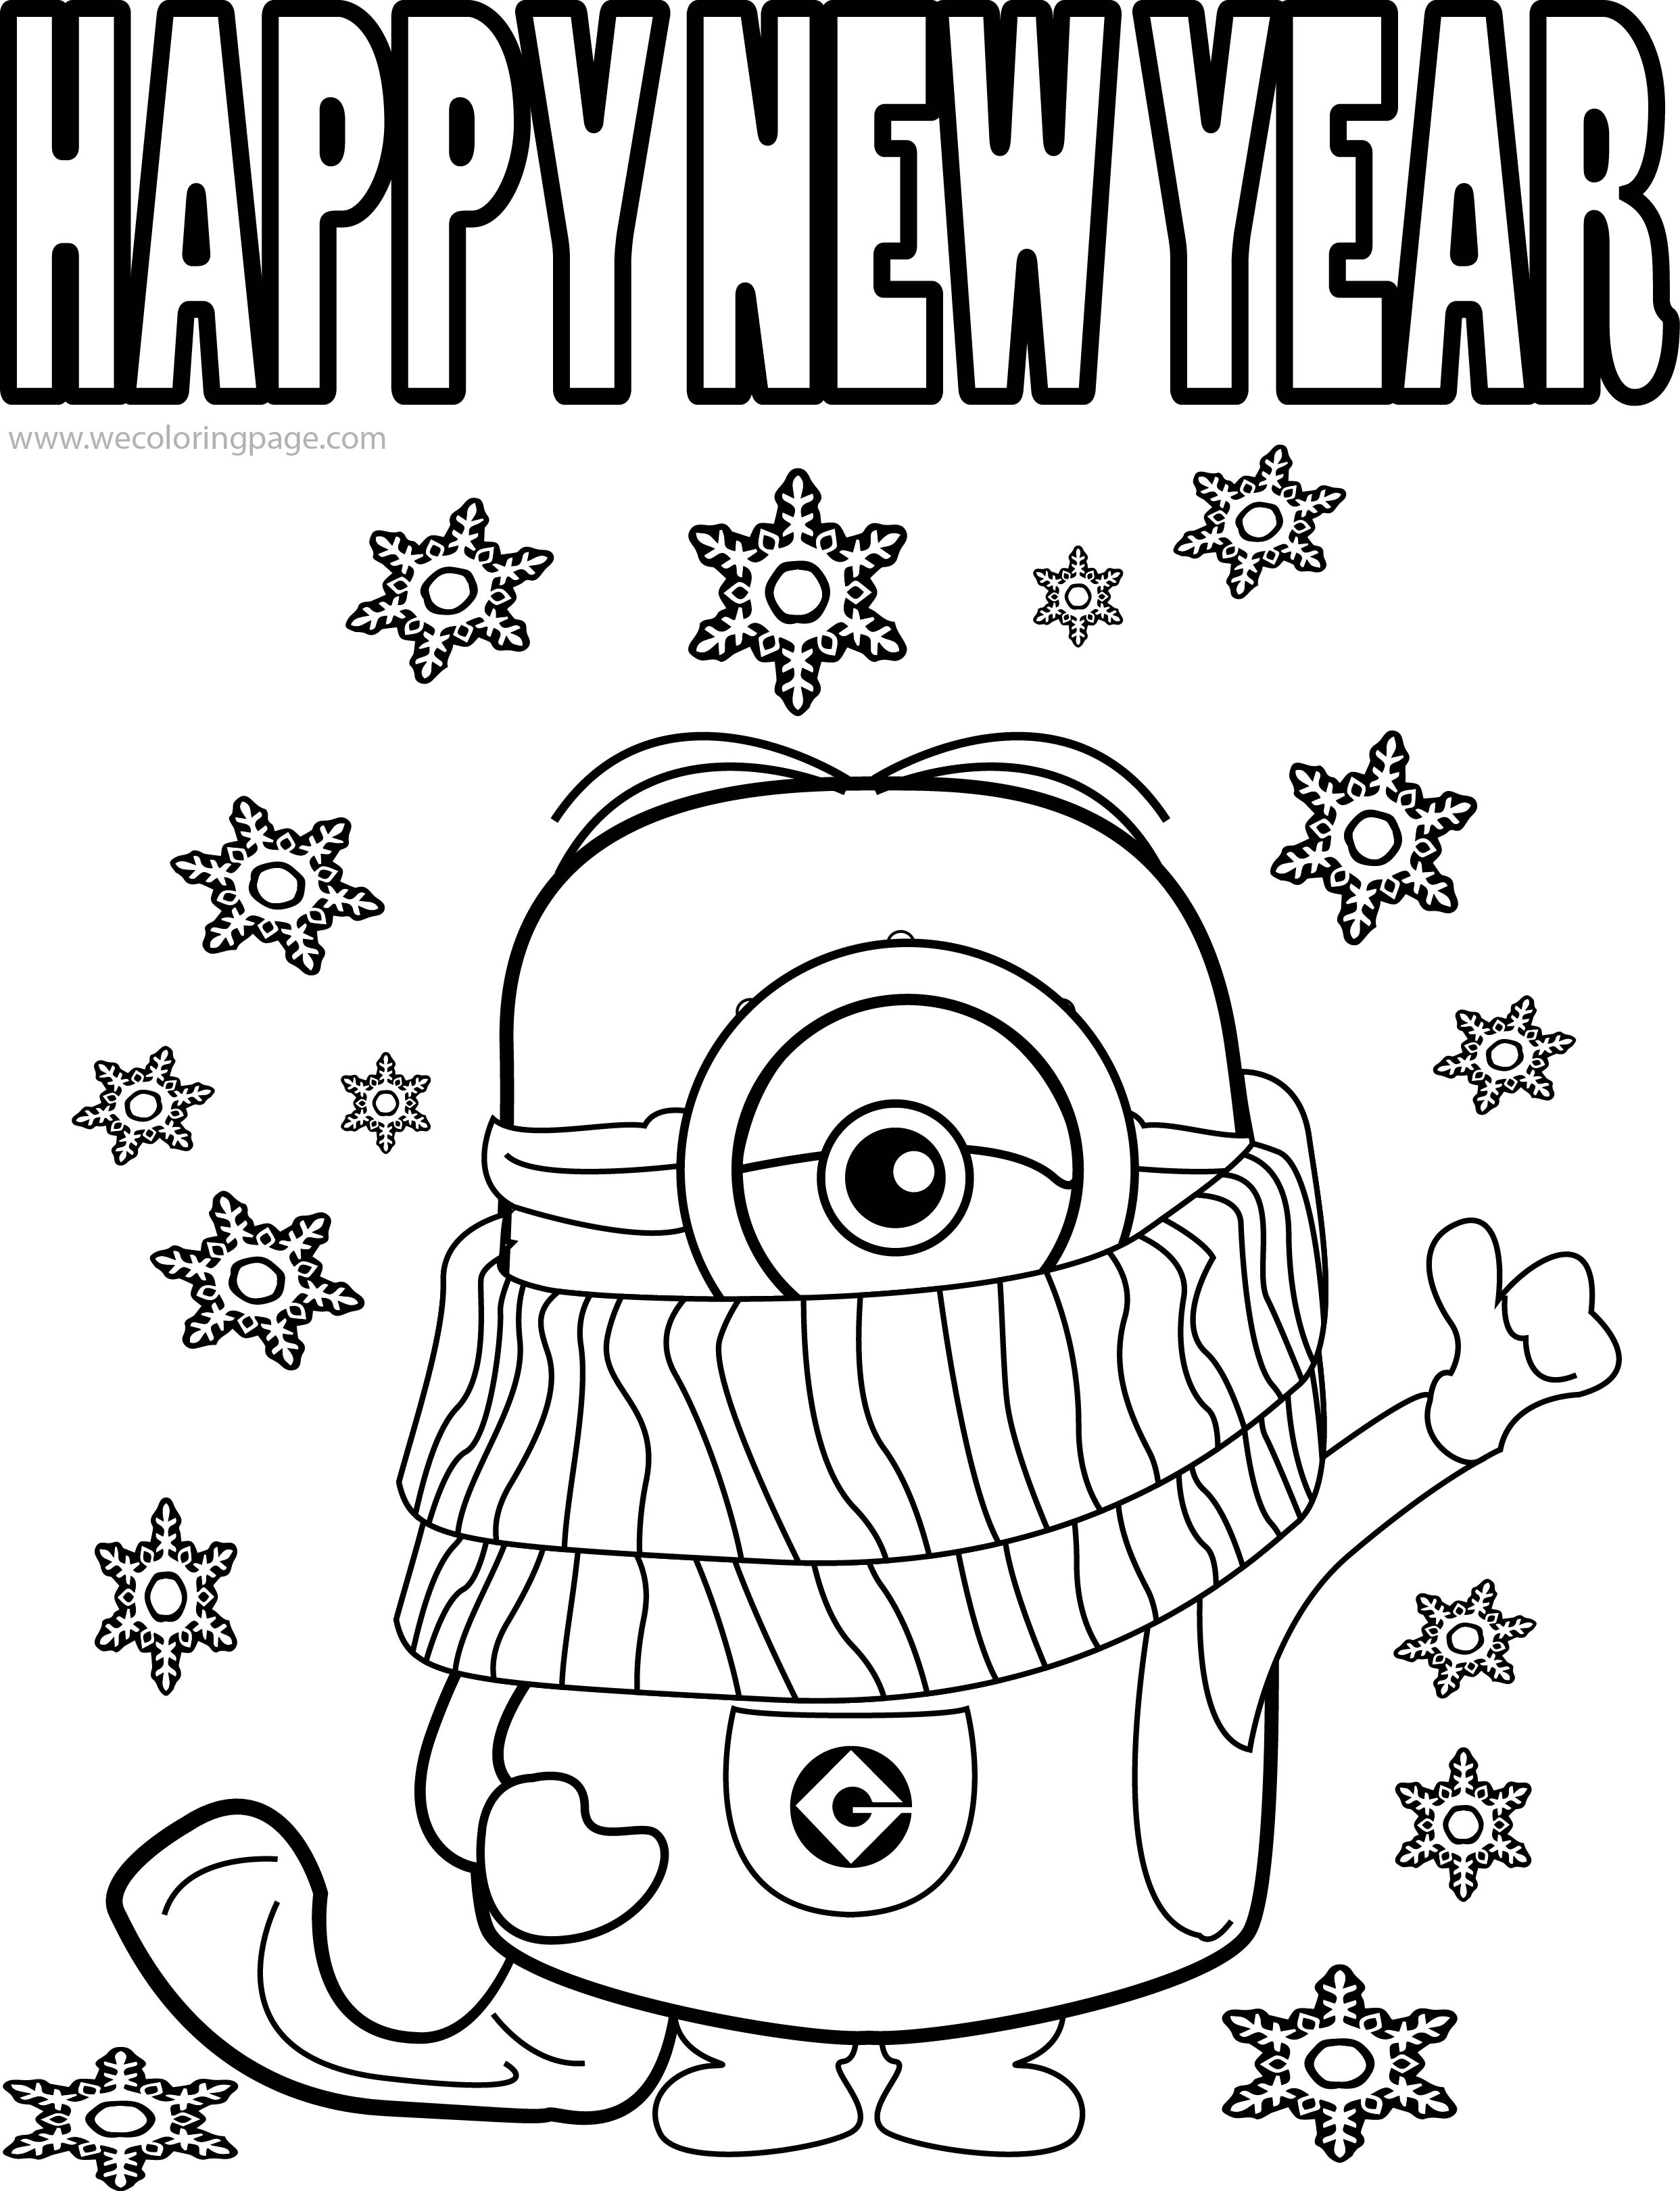 Seasons Greetings Coloring Pages